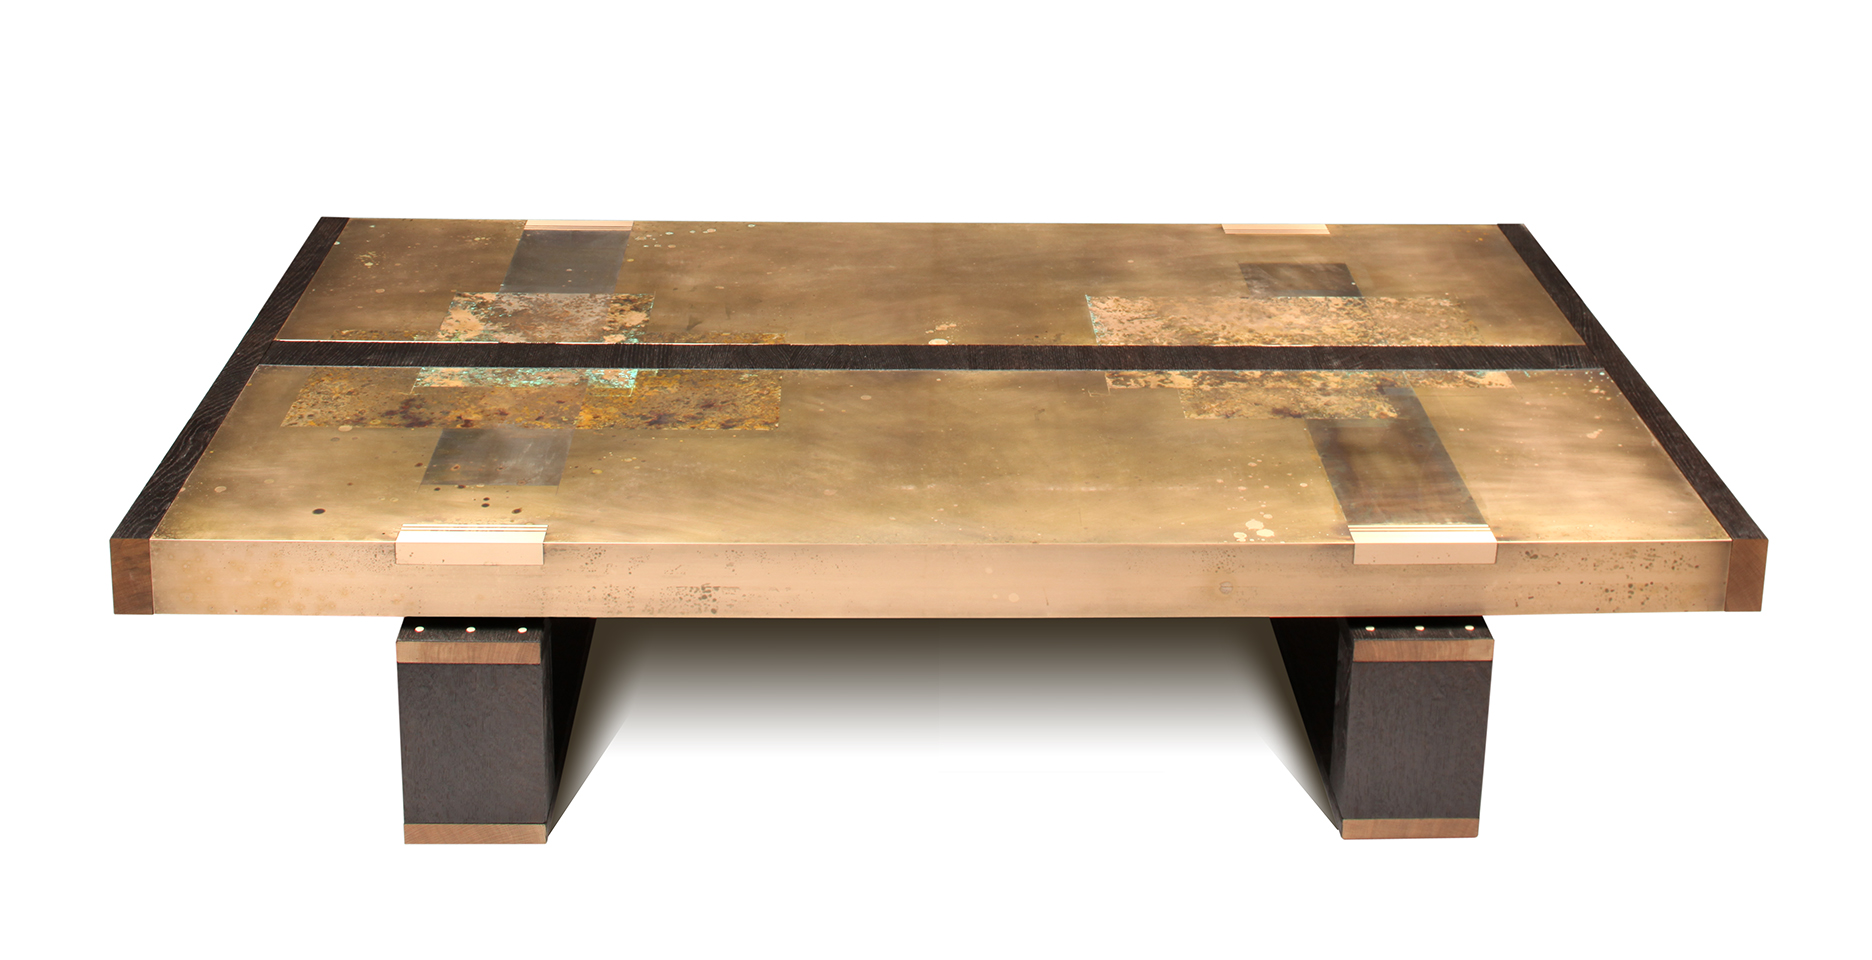 Artistic bronze coffee table